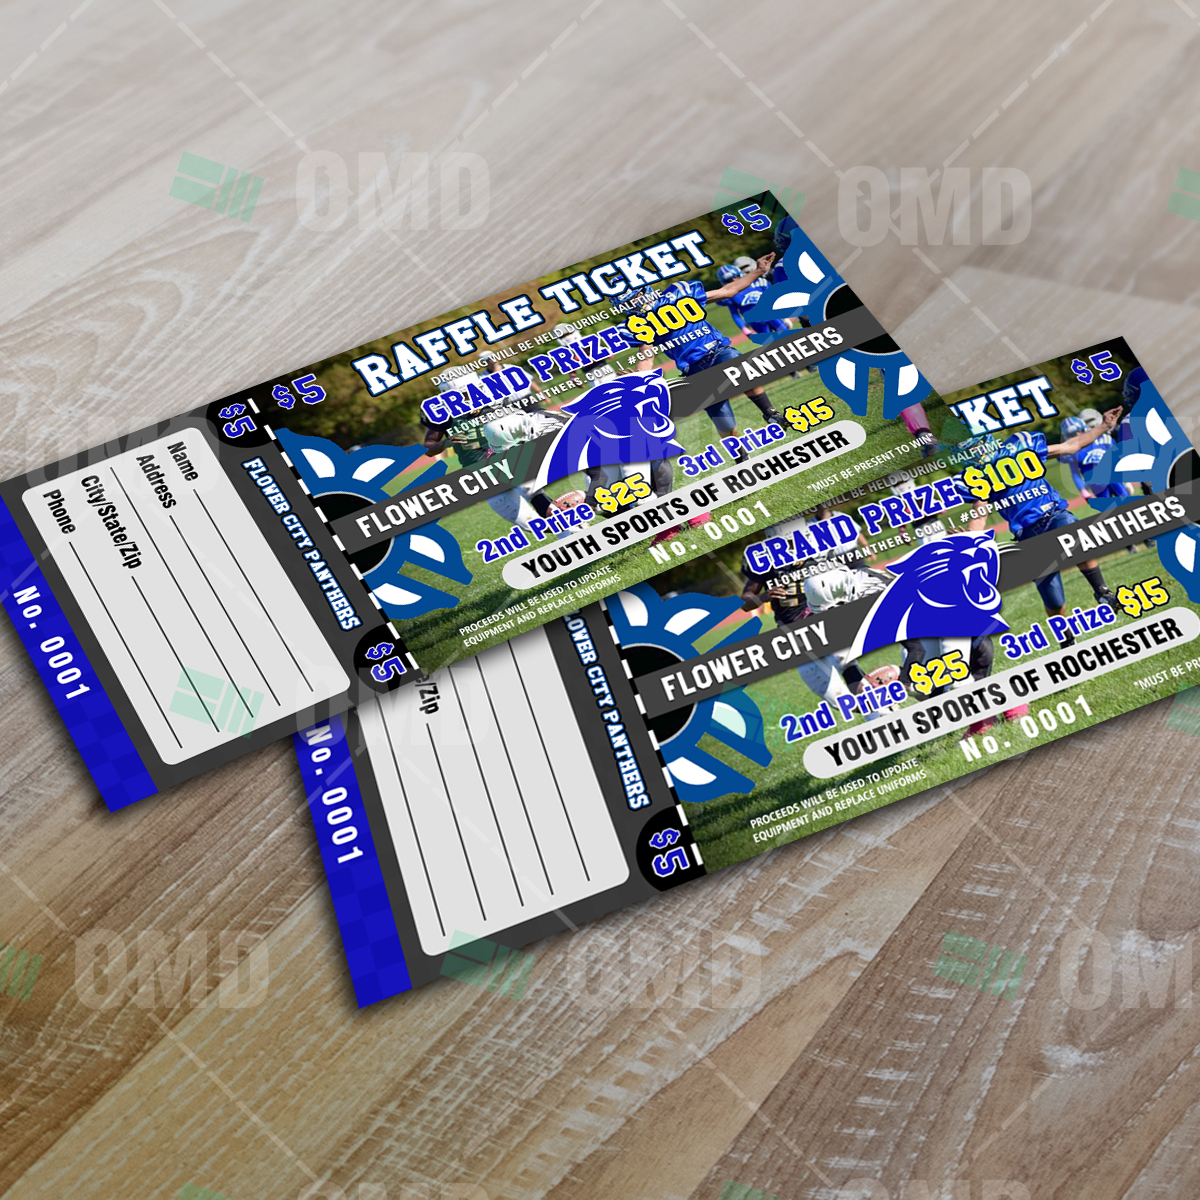 sports invites youth football raffle ticket flower city panthers raffle ticket design product 2 1